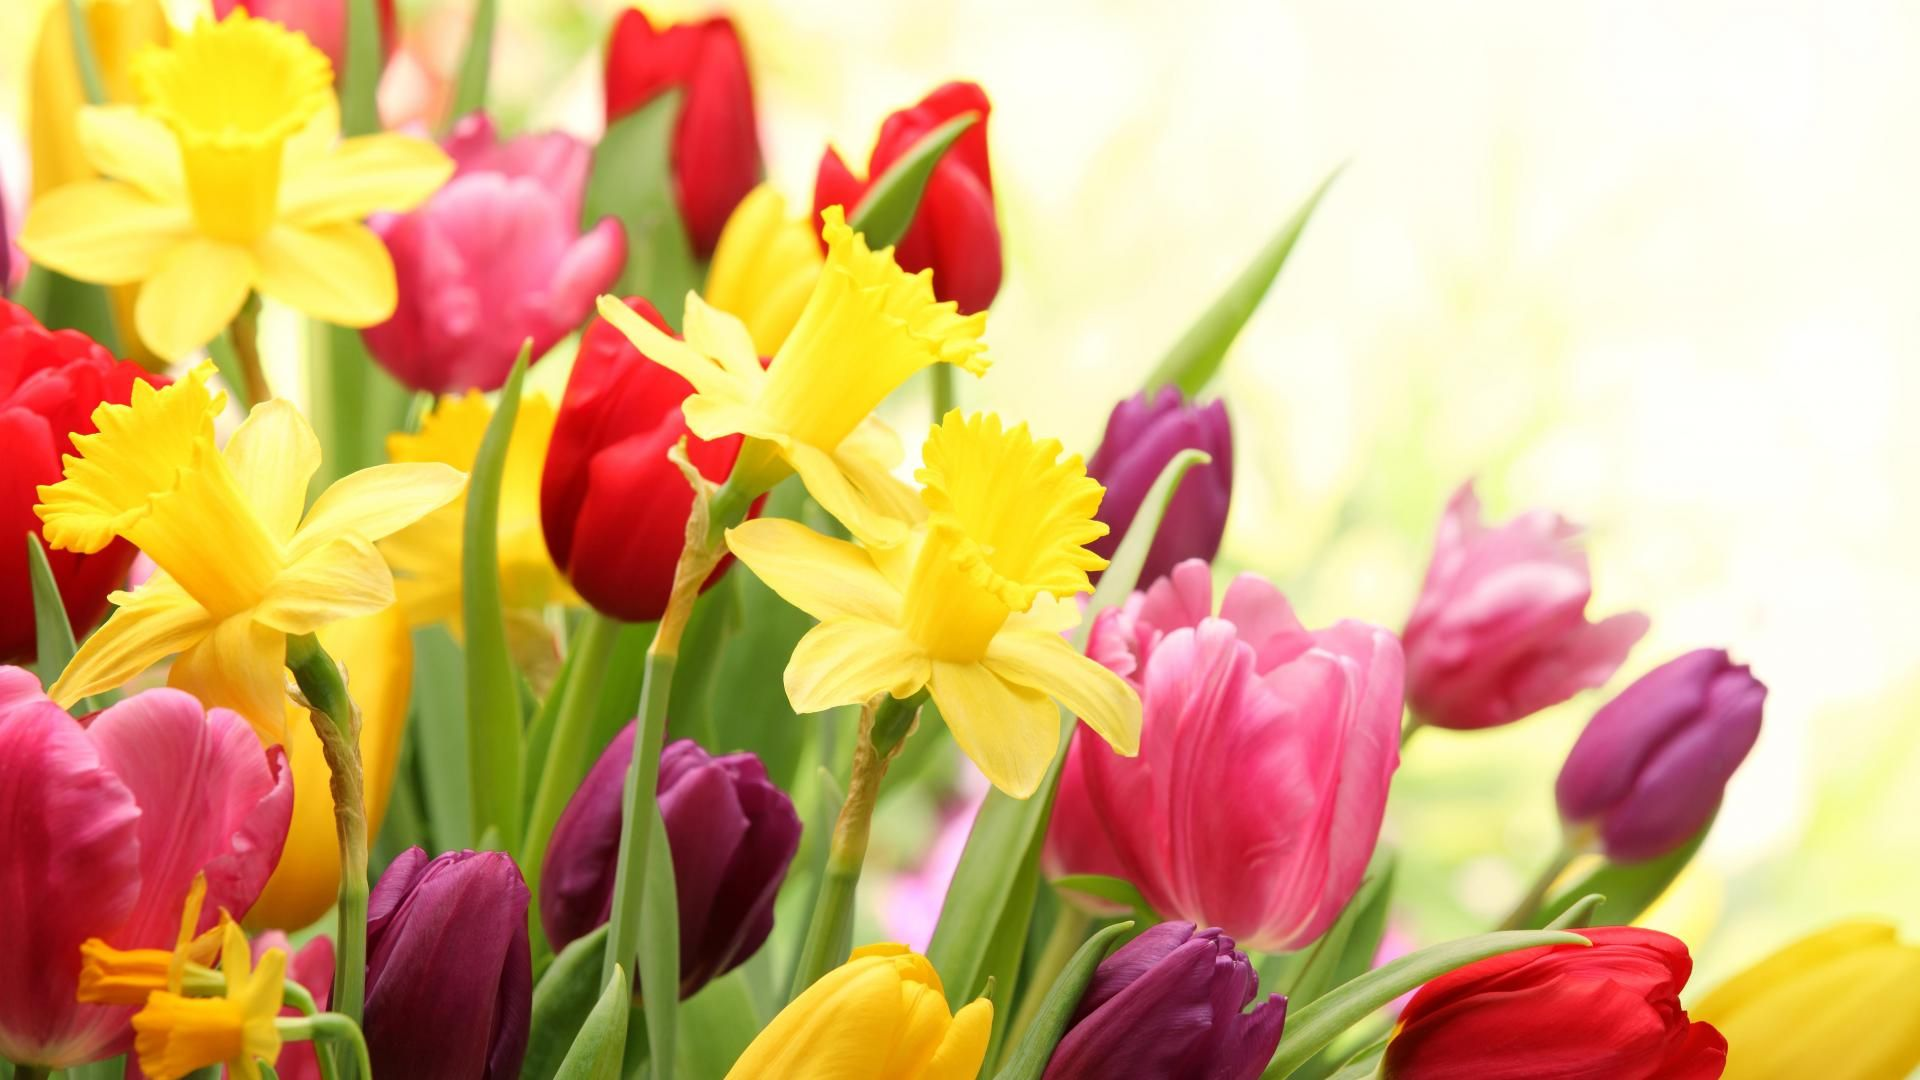 Spring flowers hd wallpapers best flower pinterest spring spring flowers hd wallpapers mightylinksfo